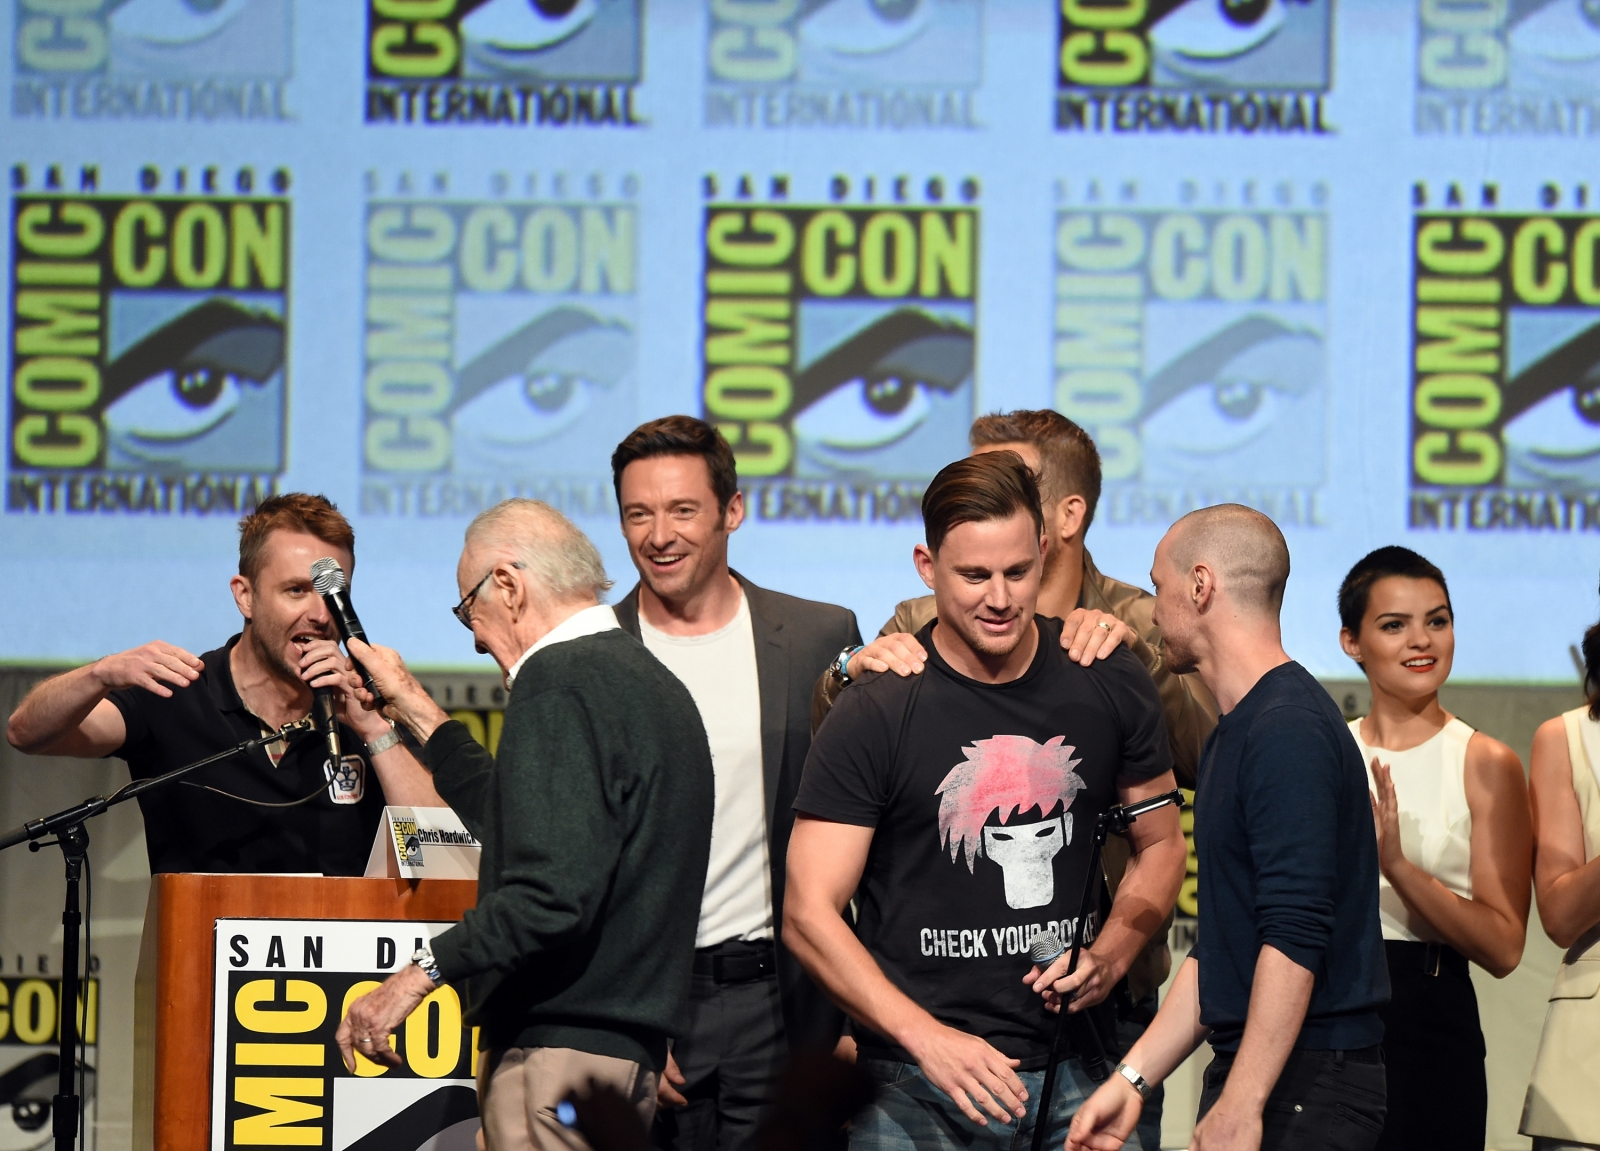 Channing Tatum at Comic Con 2015